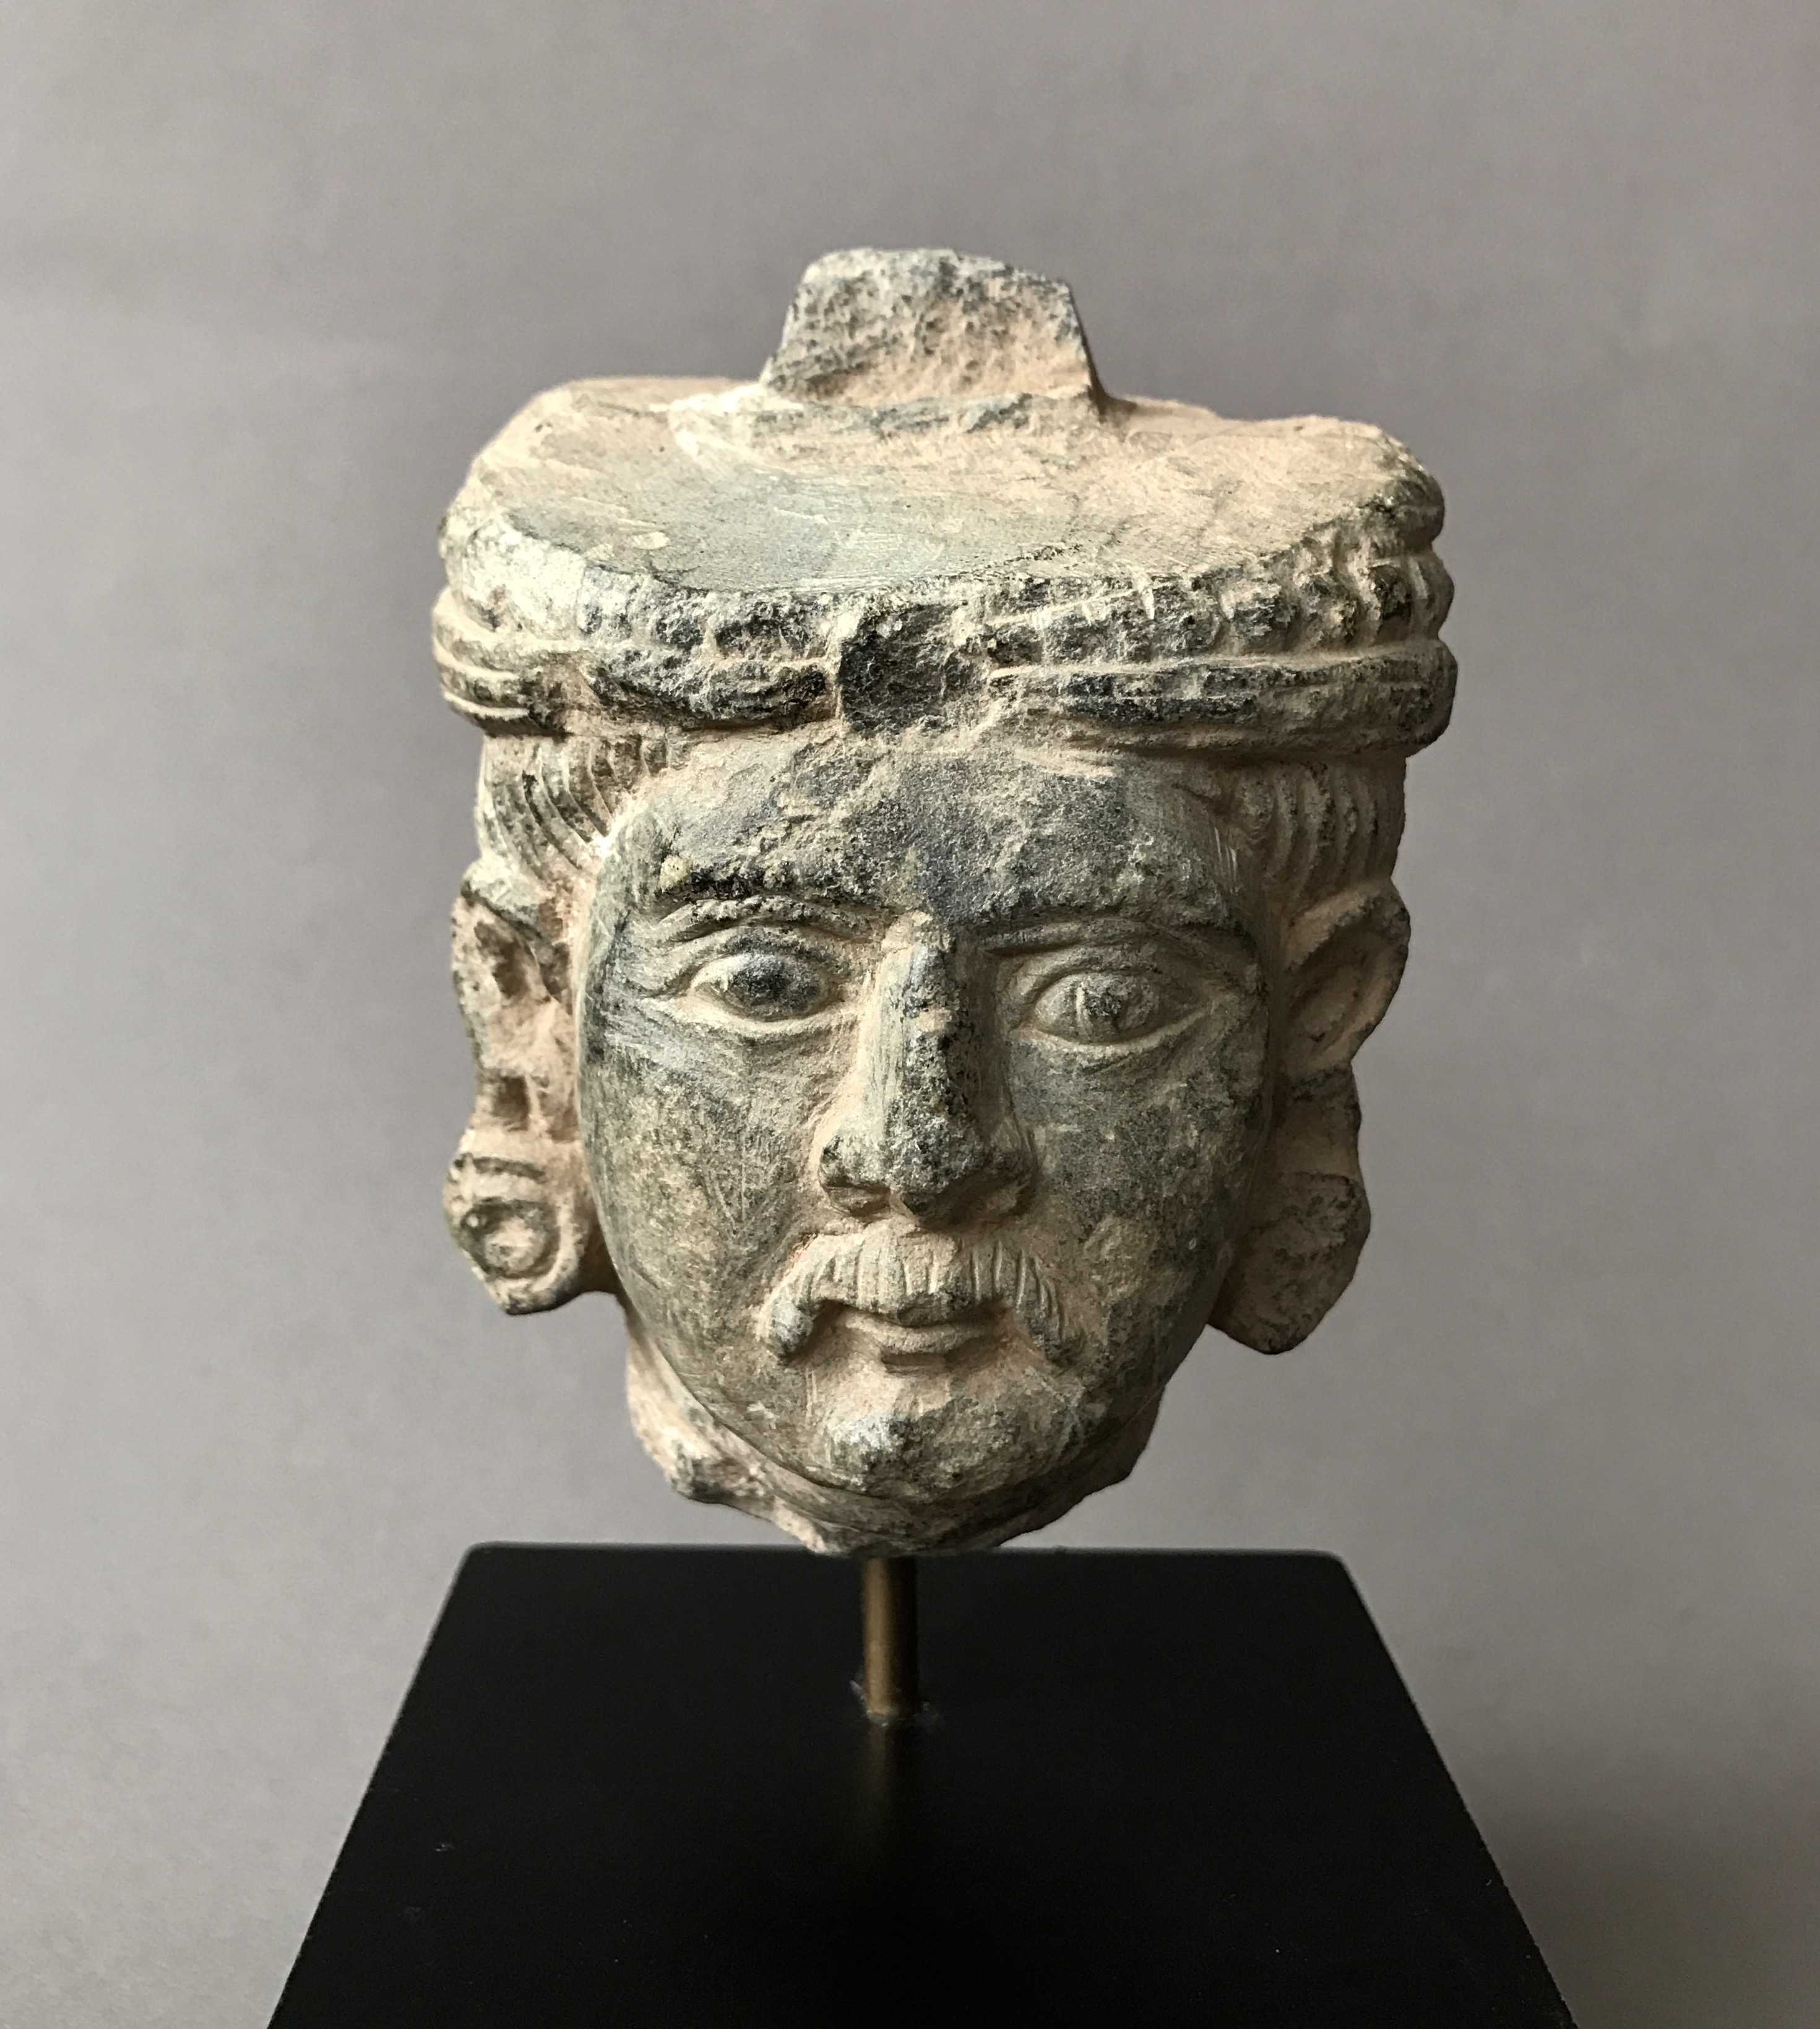 Finely carved ancient gandharan schist stone head with